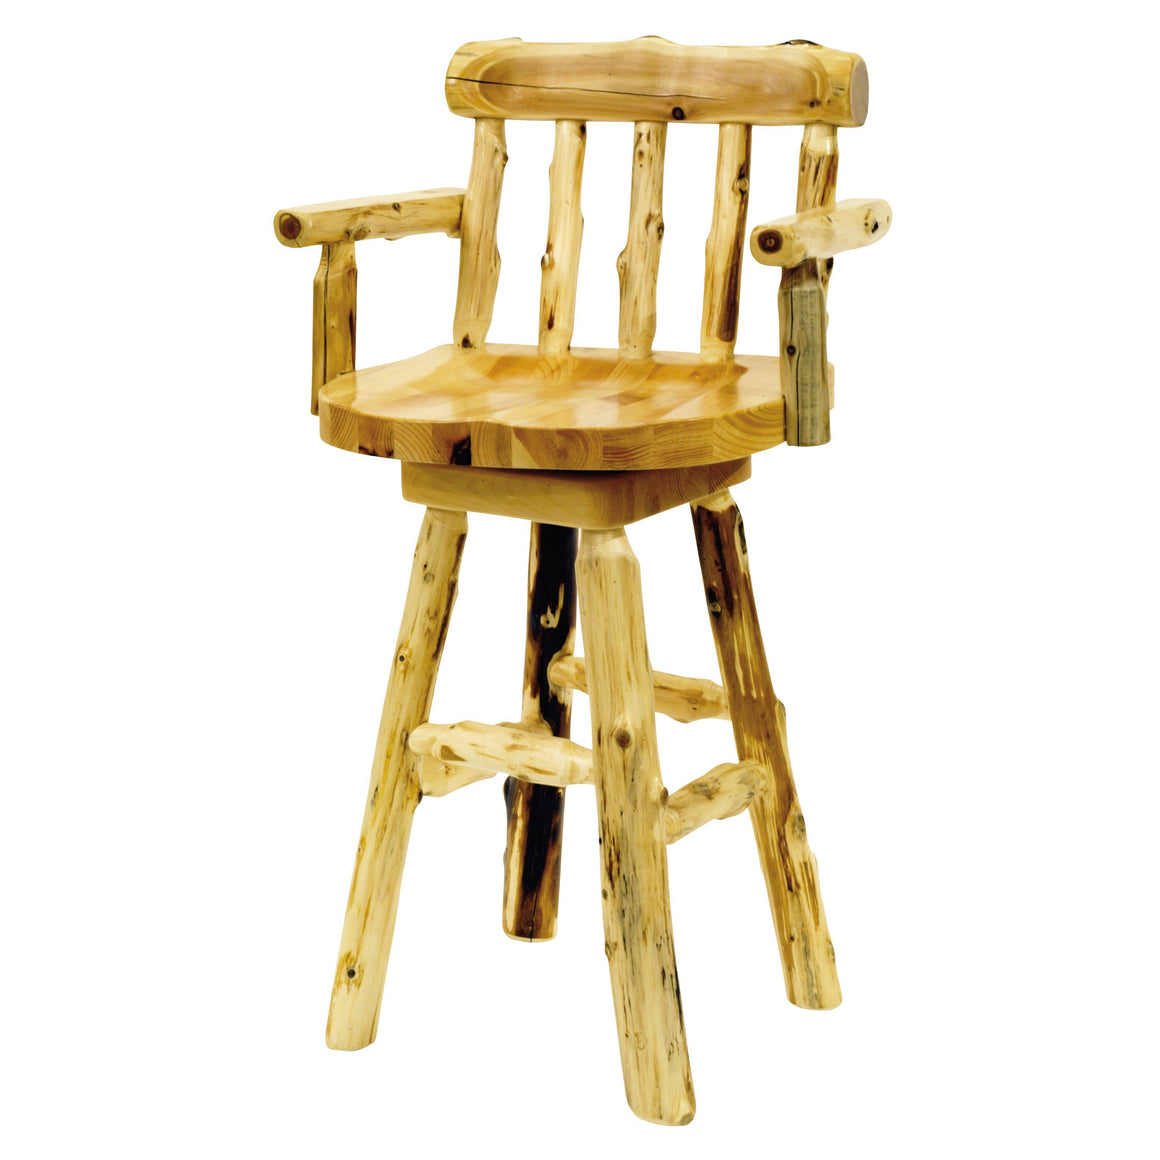 "Natural Cedar Log Counter Stool with back and arms - 24"" high - Wood Seat - Rustic Deco Incorporated"